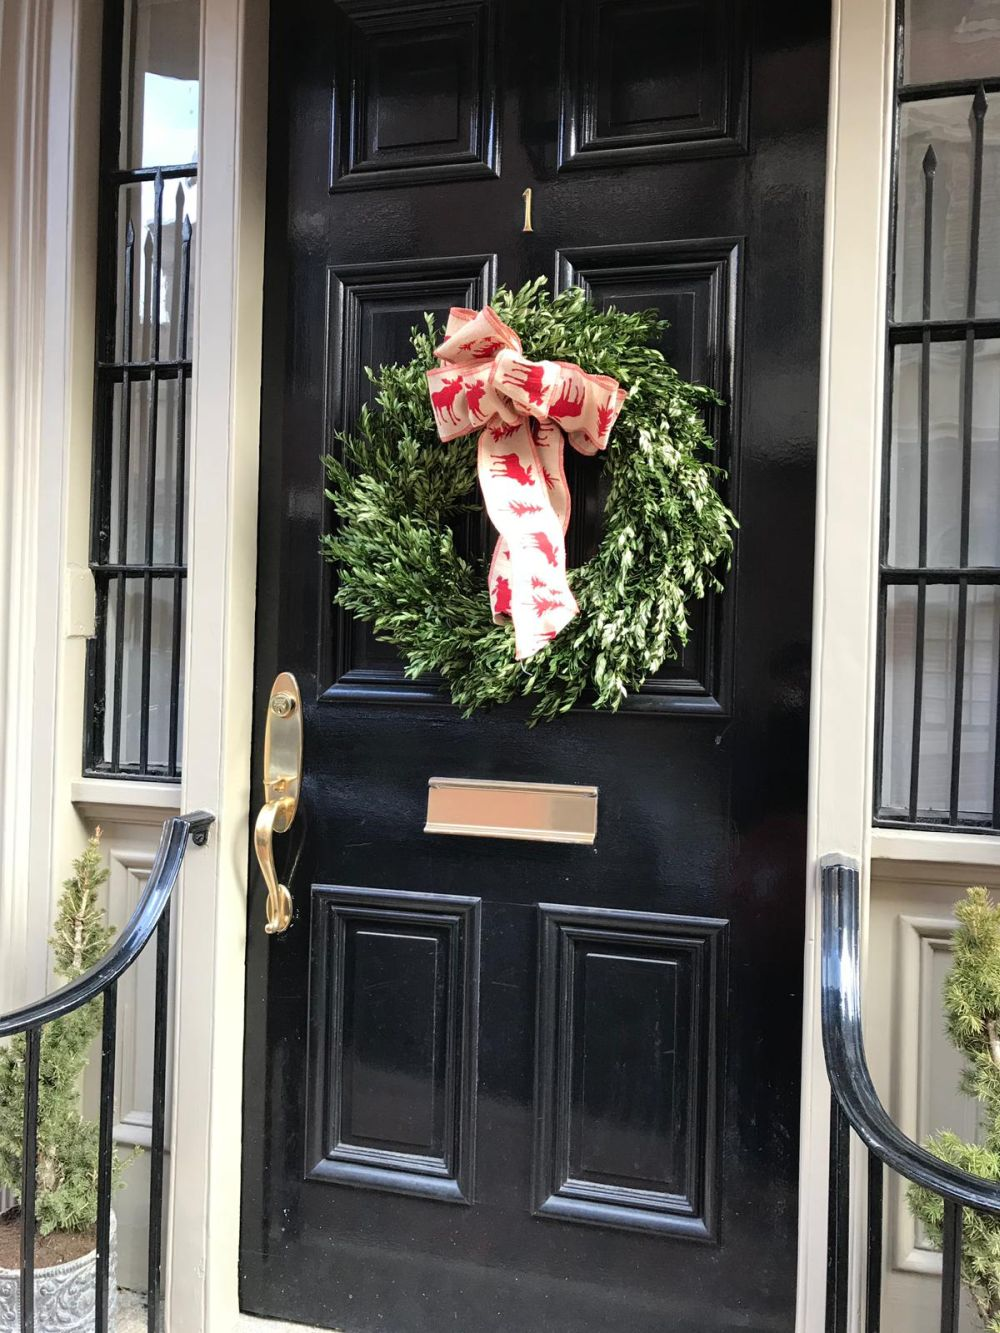 Outdoors wreaths often tend to be simple because they need to be more resilient than indoor wreaths